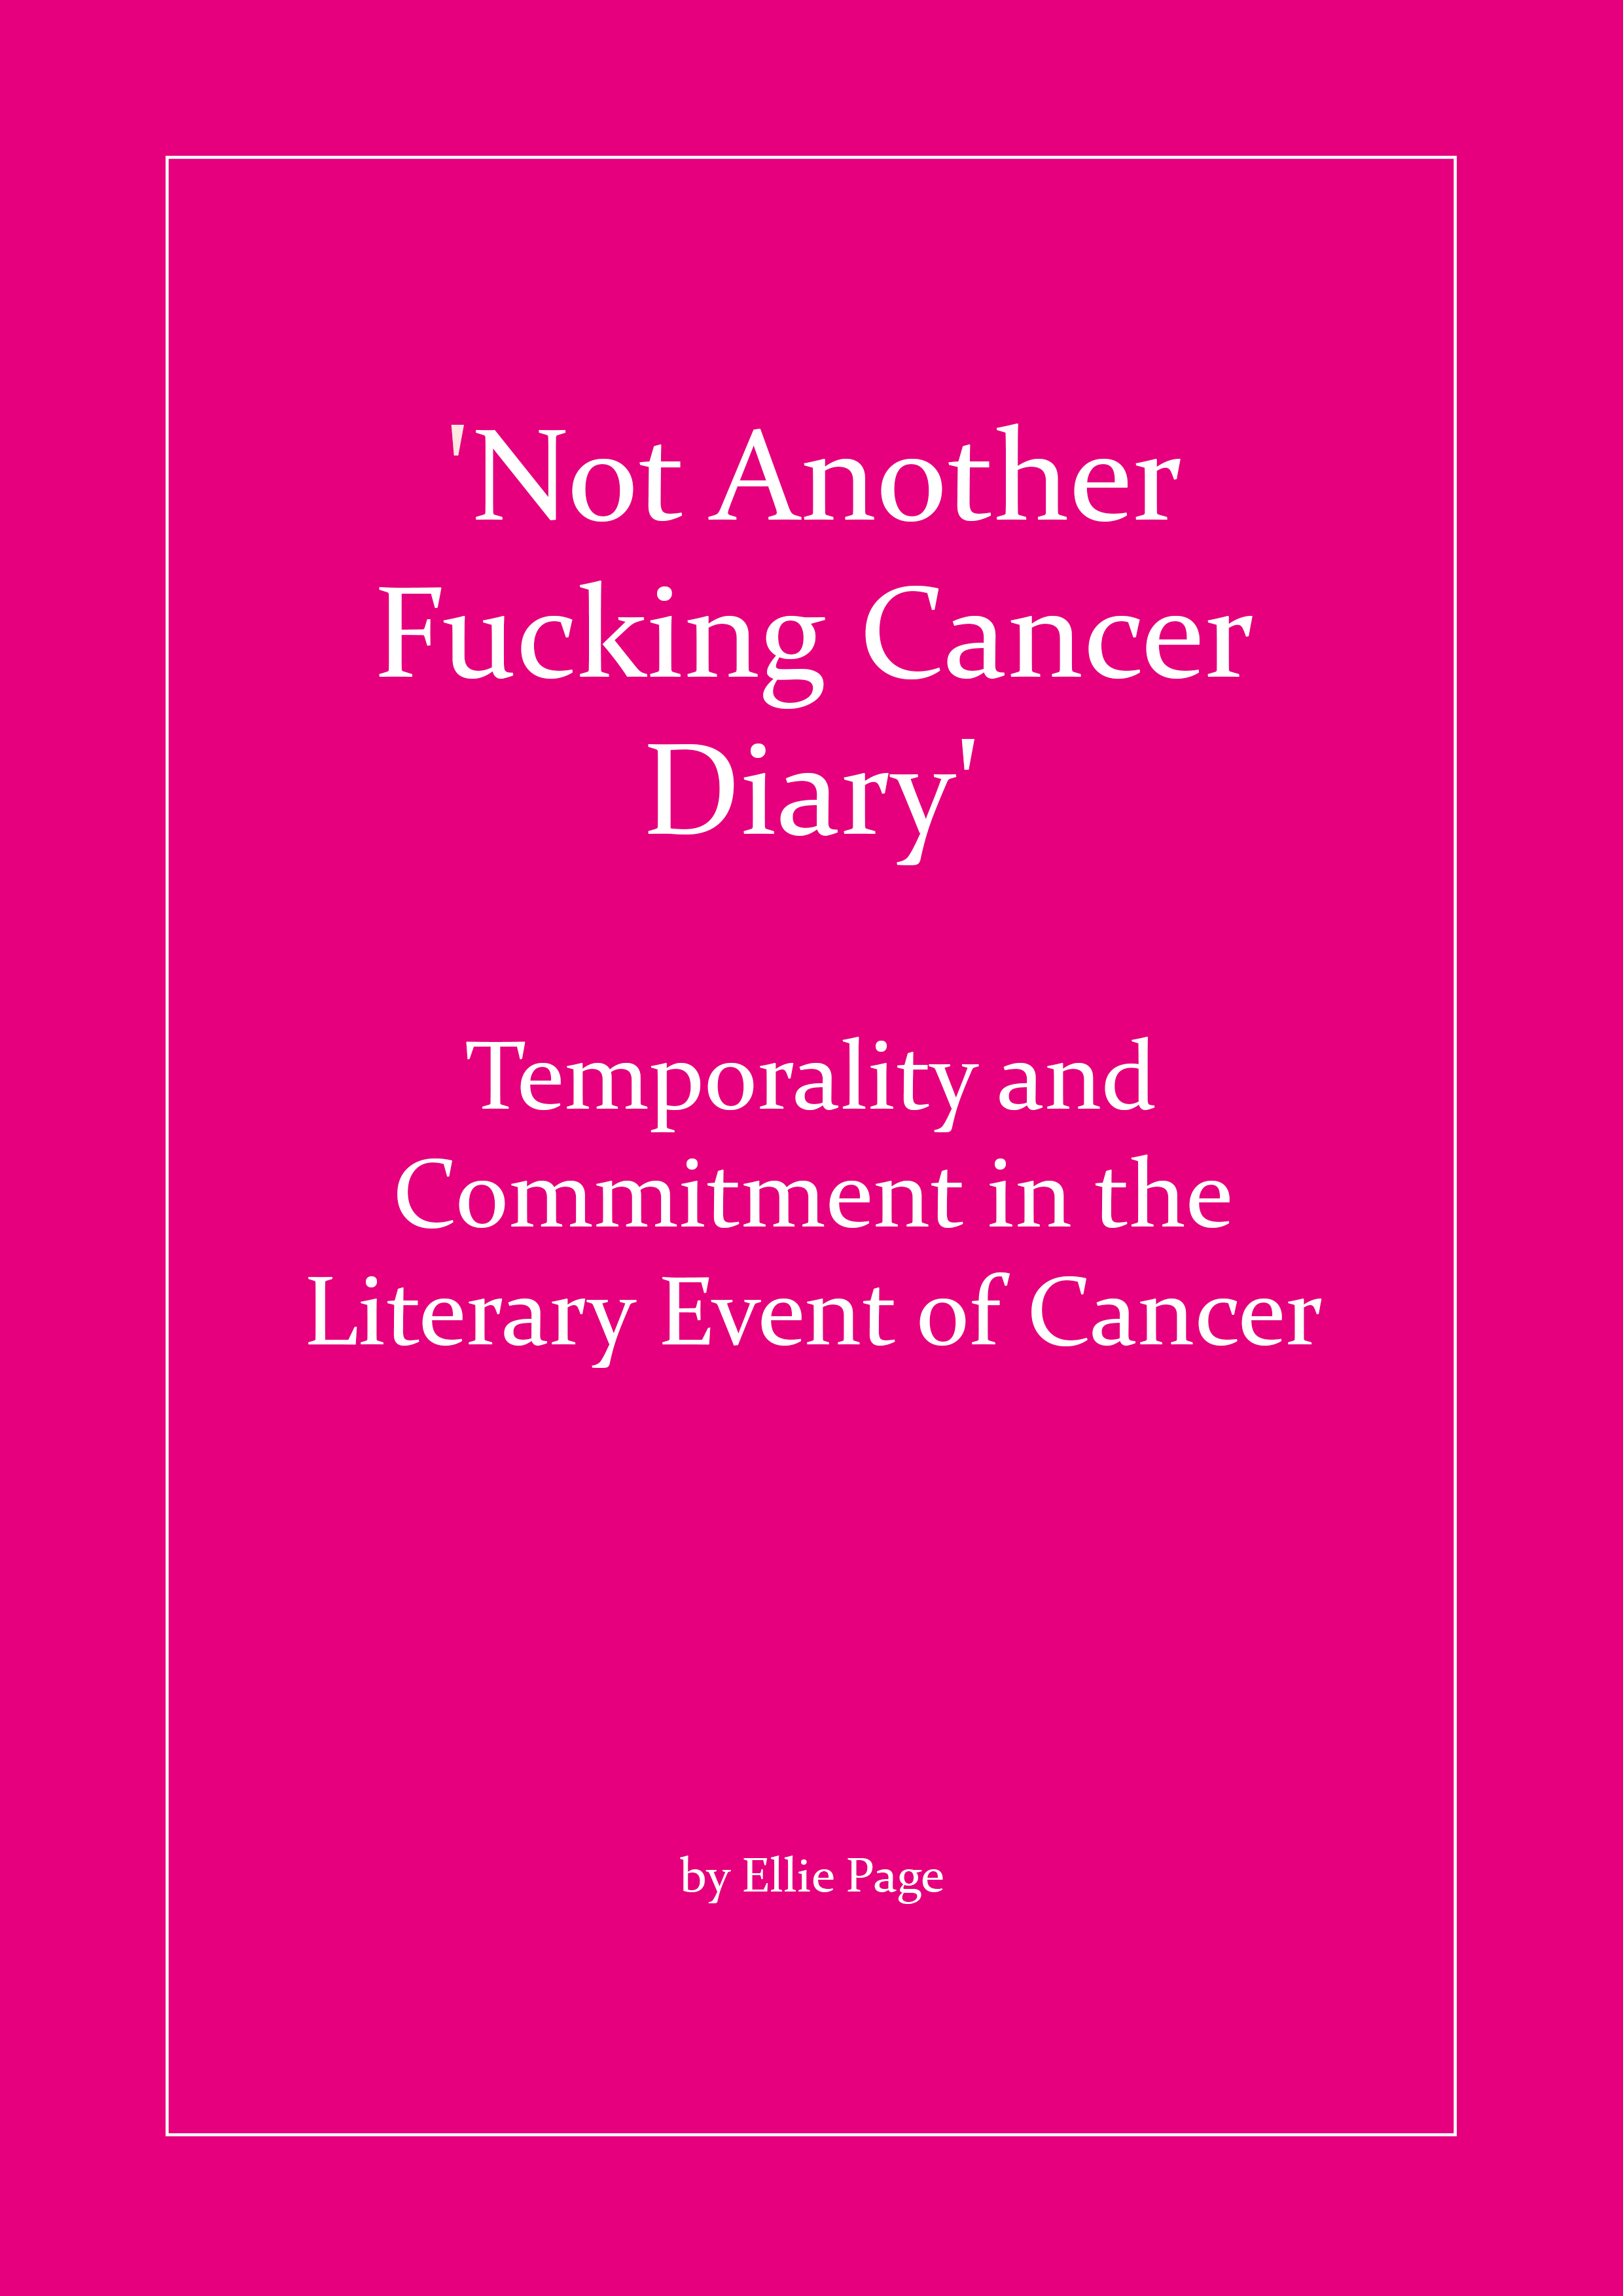 'Not Another Fucking Cancer Diary': Temporality and Commitment in the Literary Event of Cancer